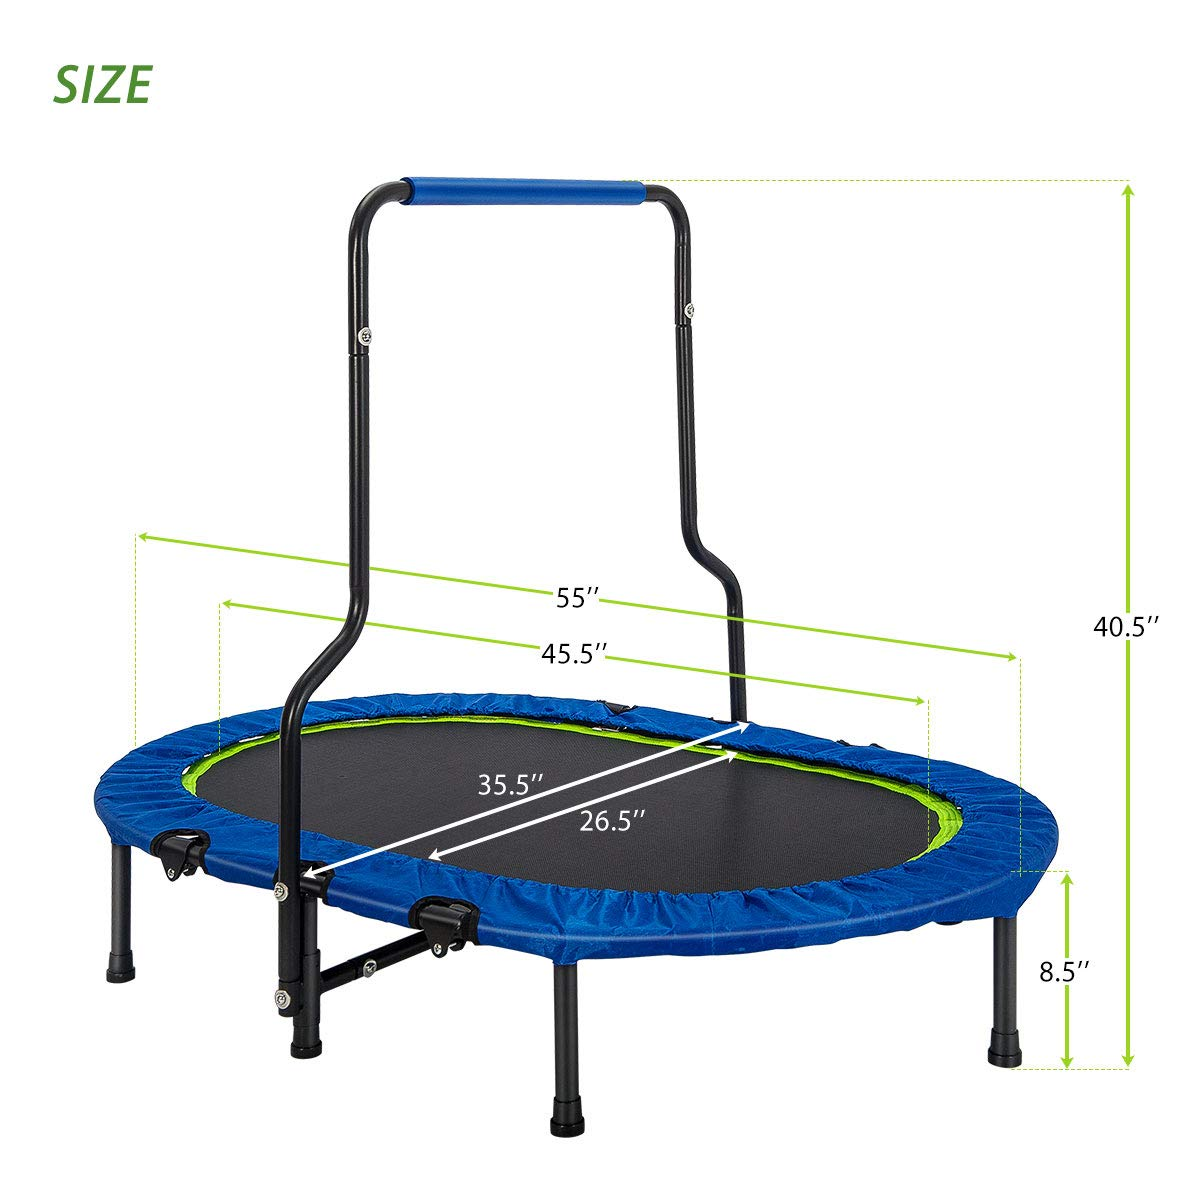 Merax Mini Rebounder Trampoline with Handle for Two Kids, Parent-Child Trampoline (Blue) by Merax (Image #6)